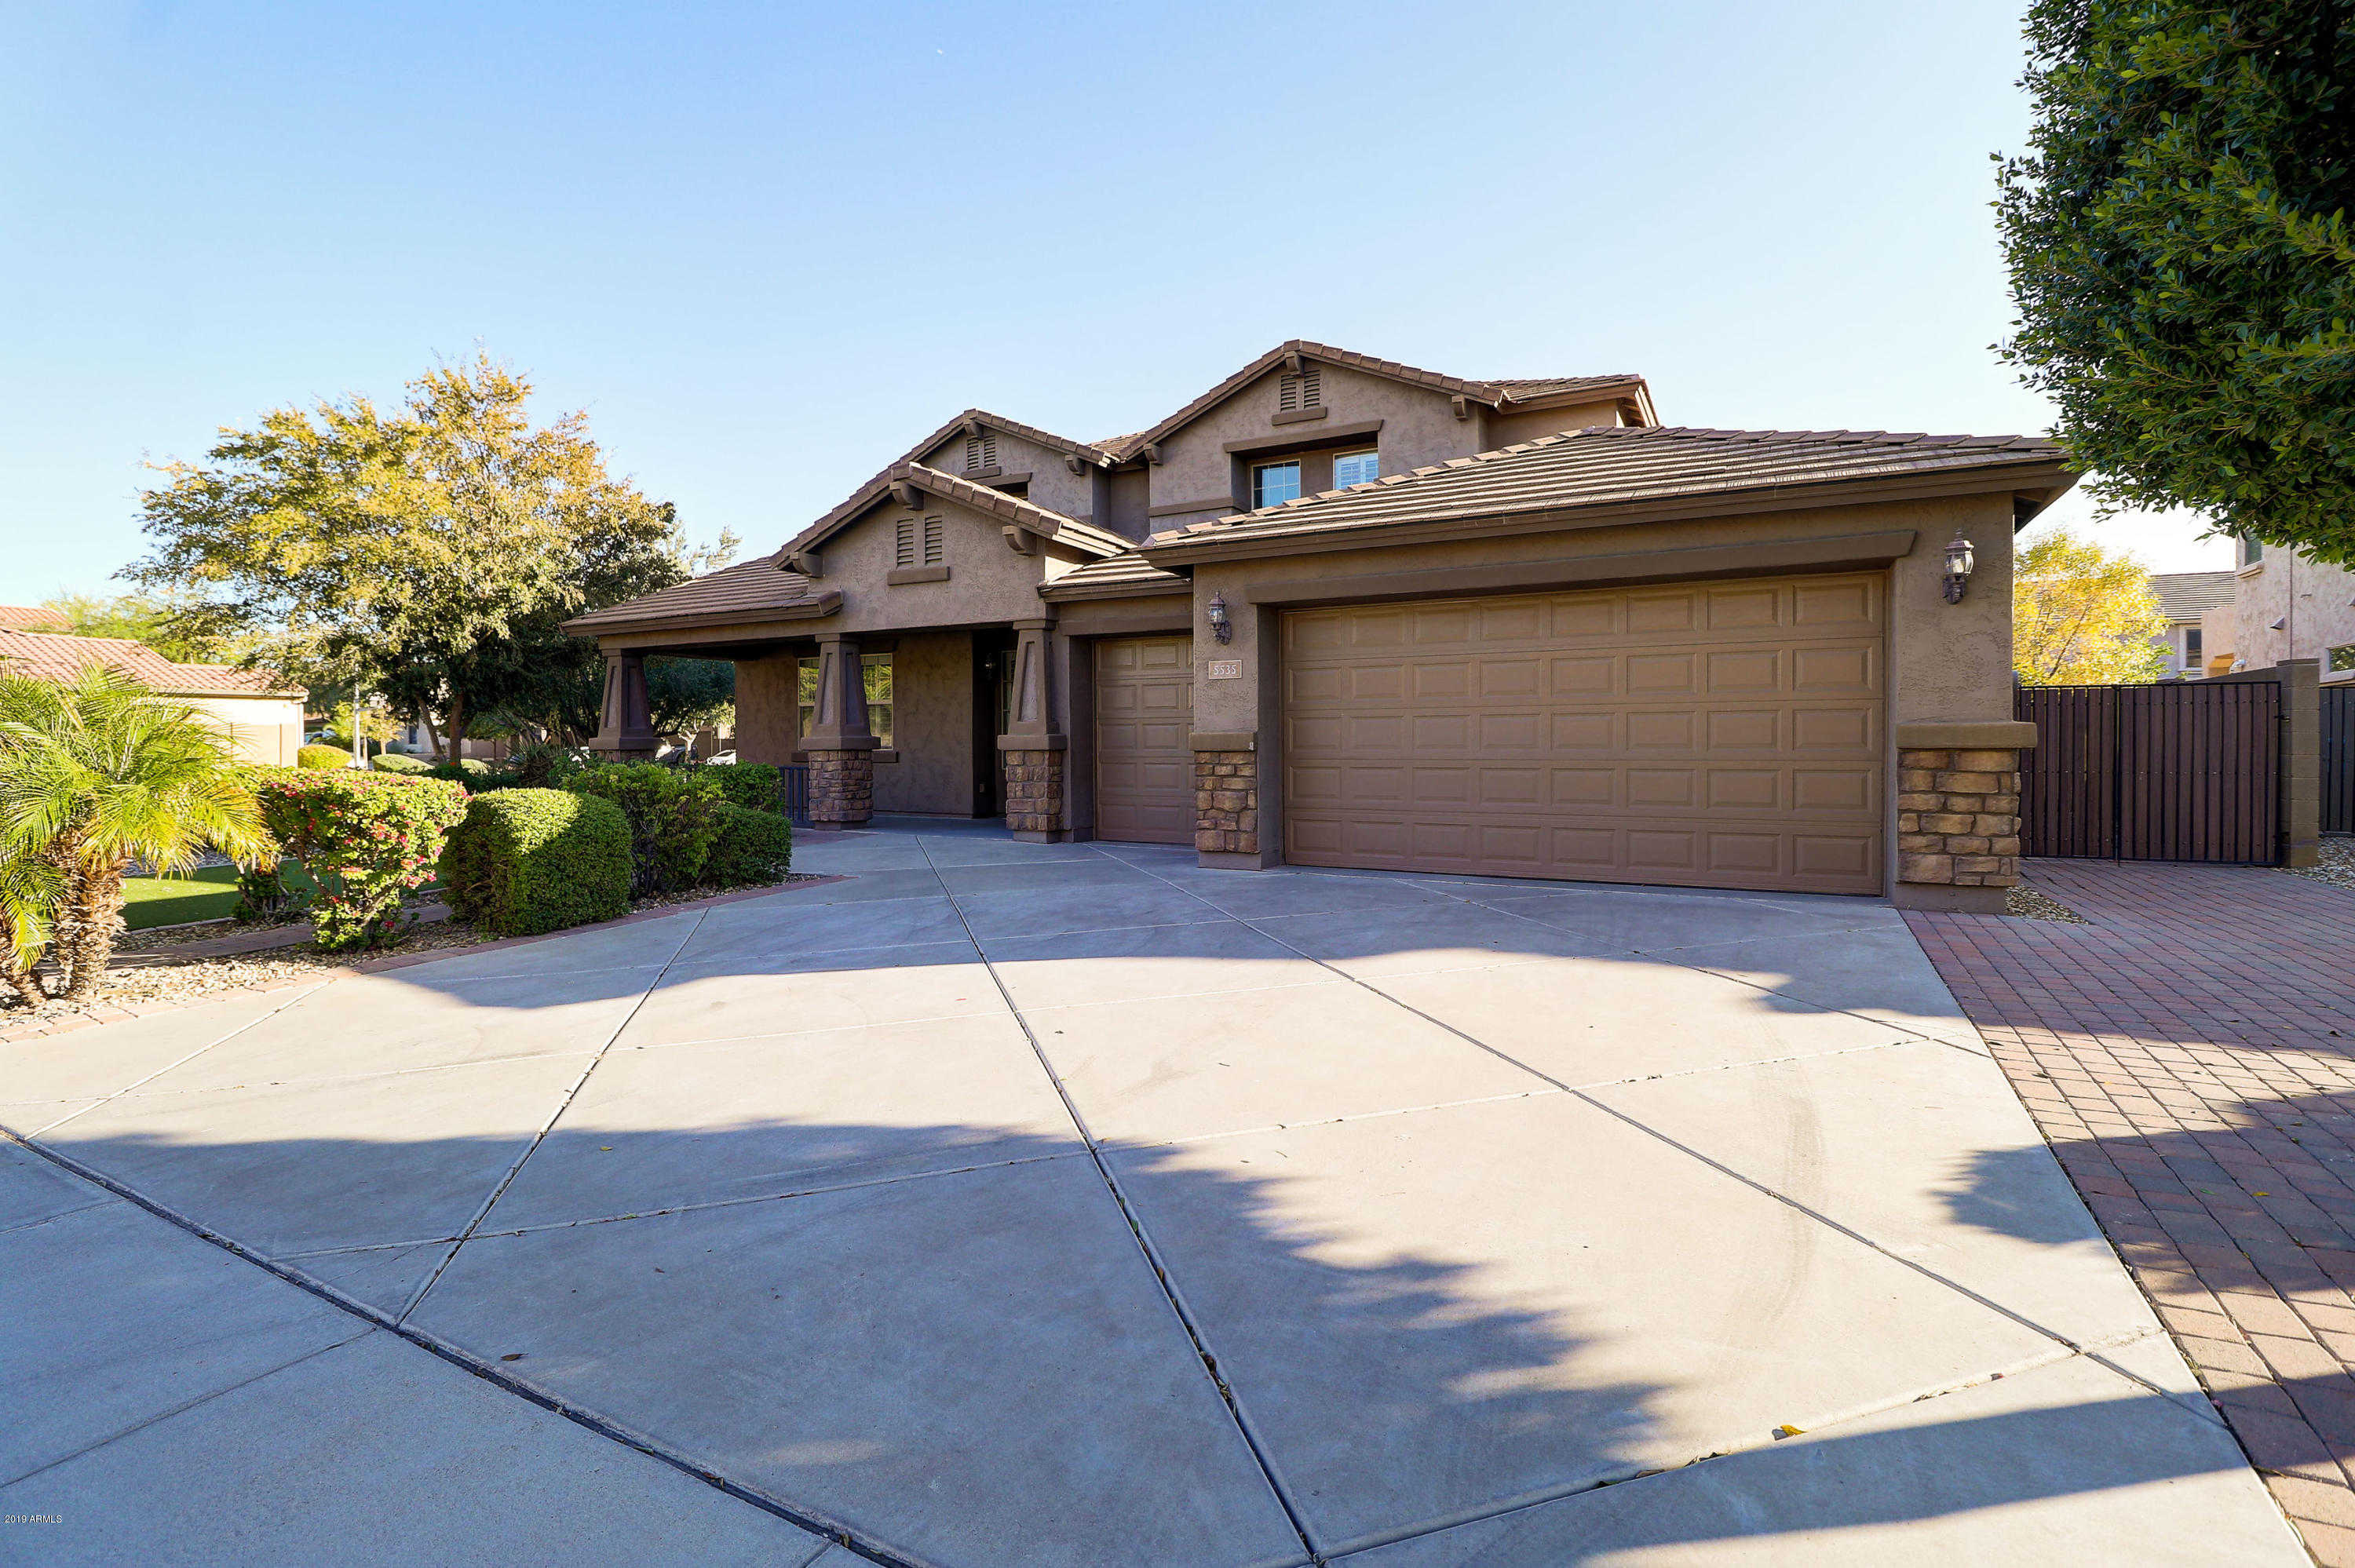 $452,000 - 5Br/4Ba - Home for Sale in Stetson Valley, Phoenix